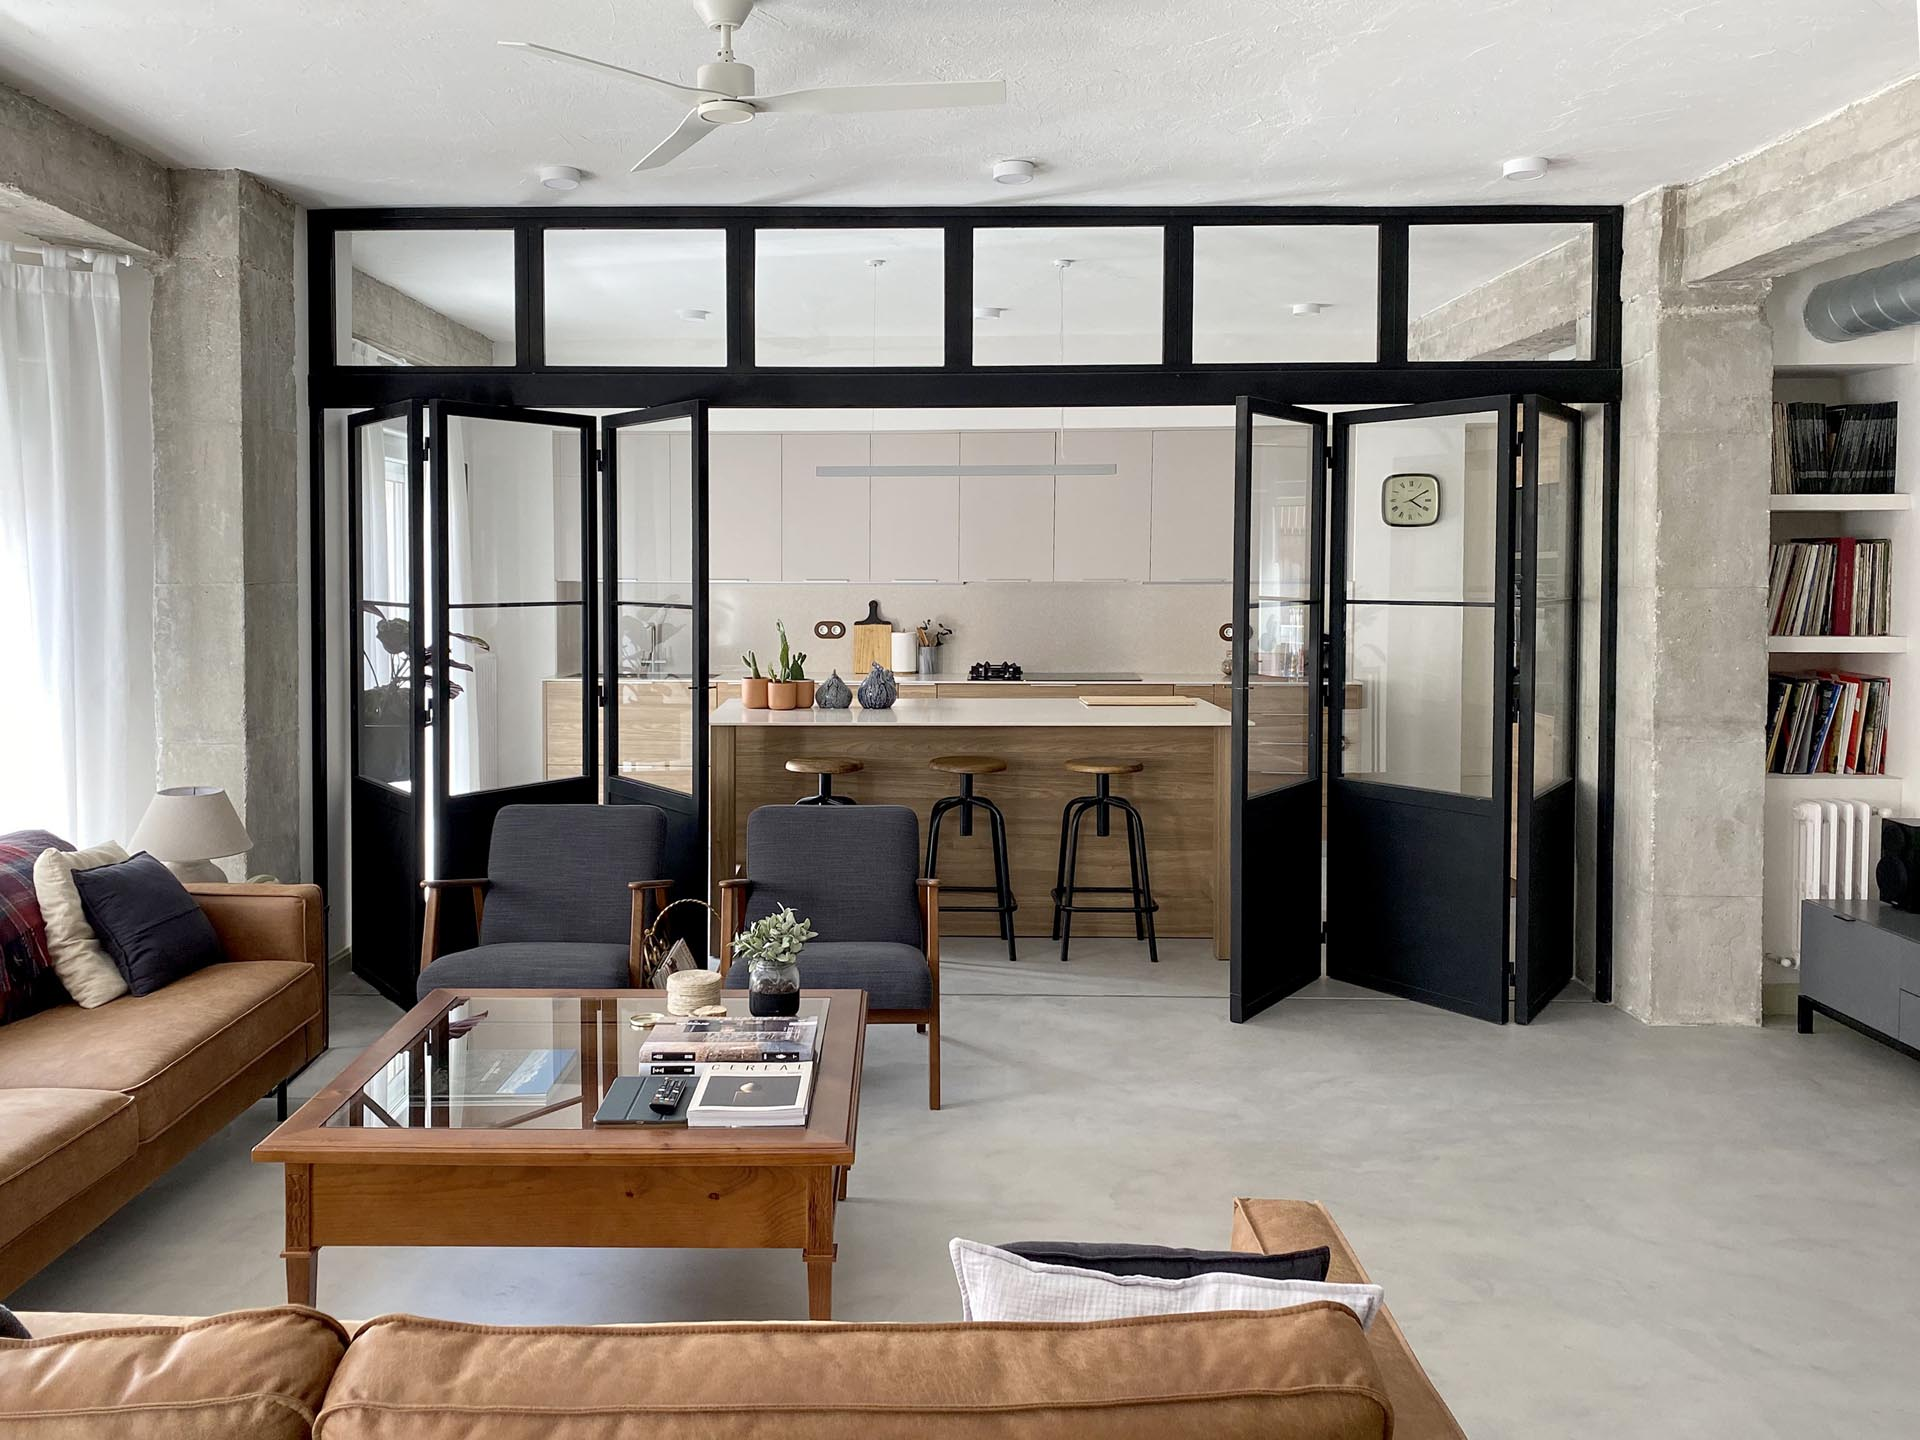 A modern kitchen can be closed off from the living room by black-framed doors with windows.